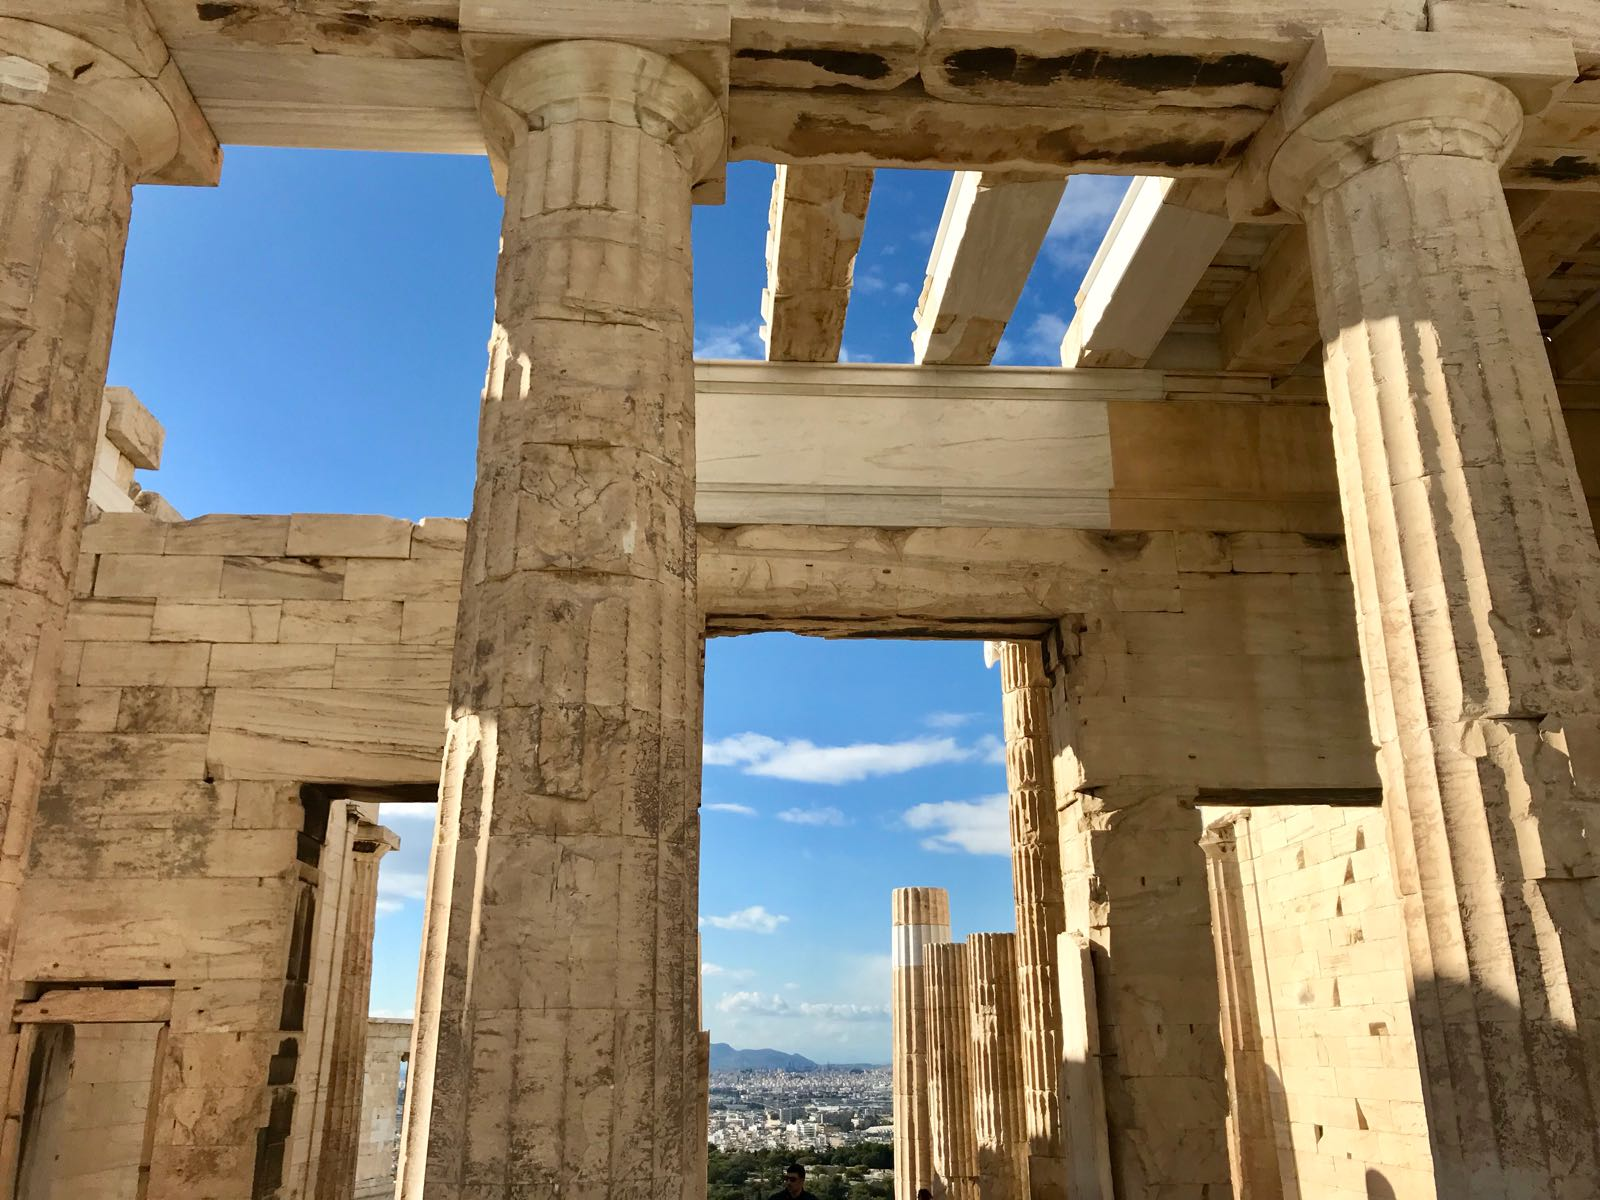 View from inside the Propylaea in the Acropolis with the blue sky showing through the gaps